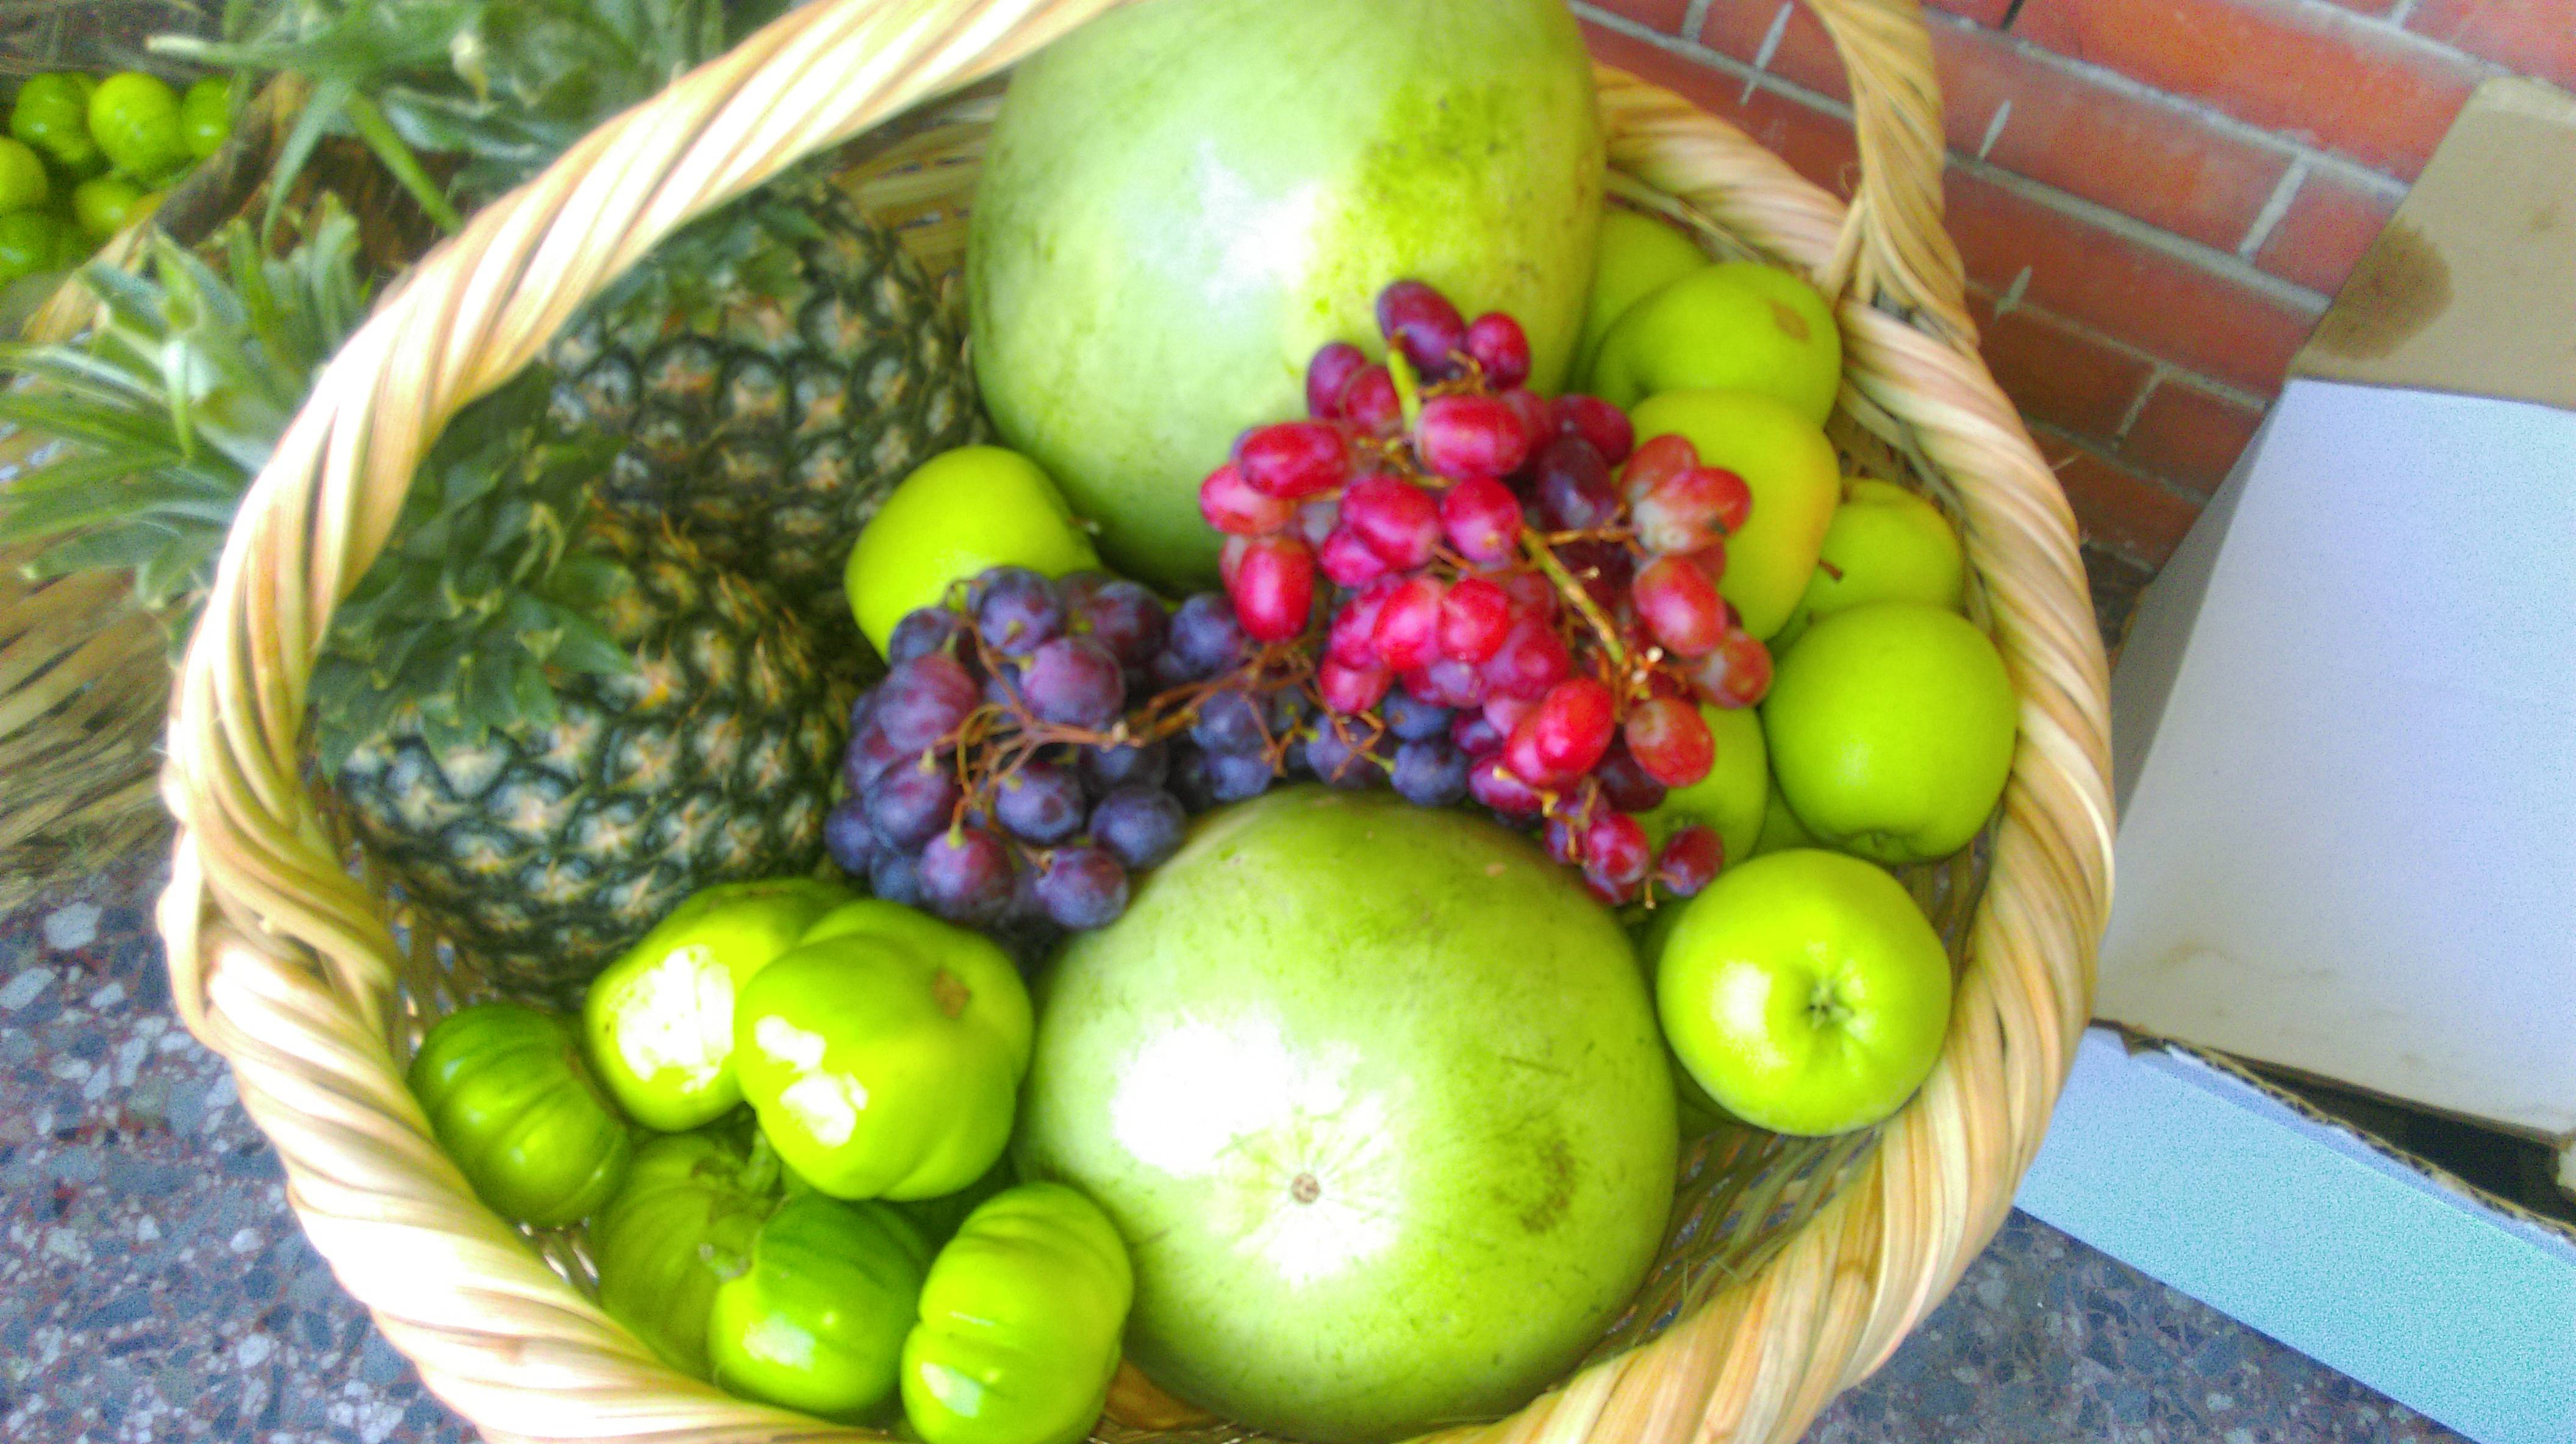 Baskets Online Buy Large Fruit Basket Online From The Market Food Shop